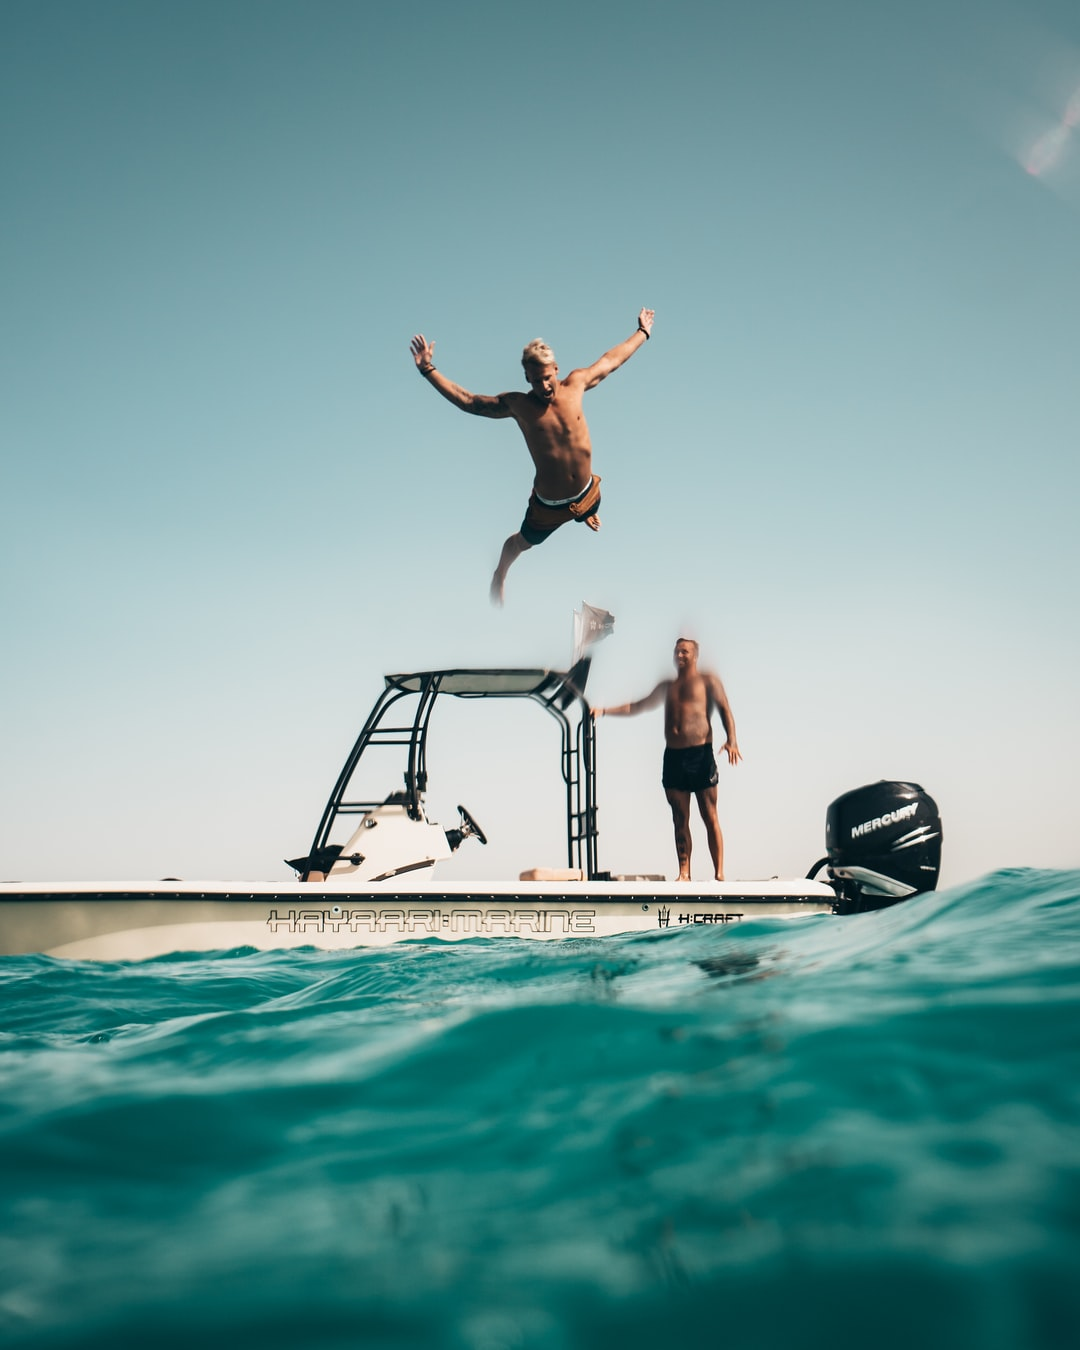 Friends having fun, jumping of boat into the ocean in Abu Dhabi.